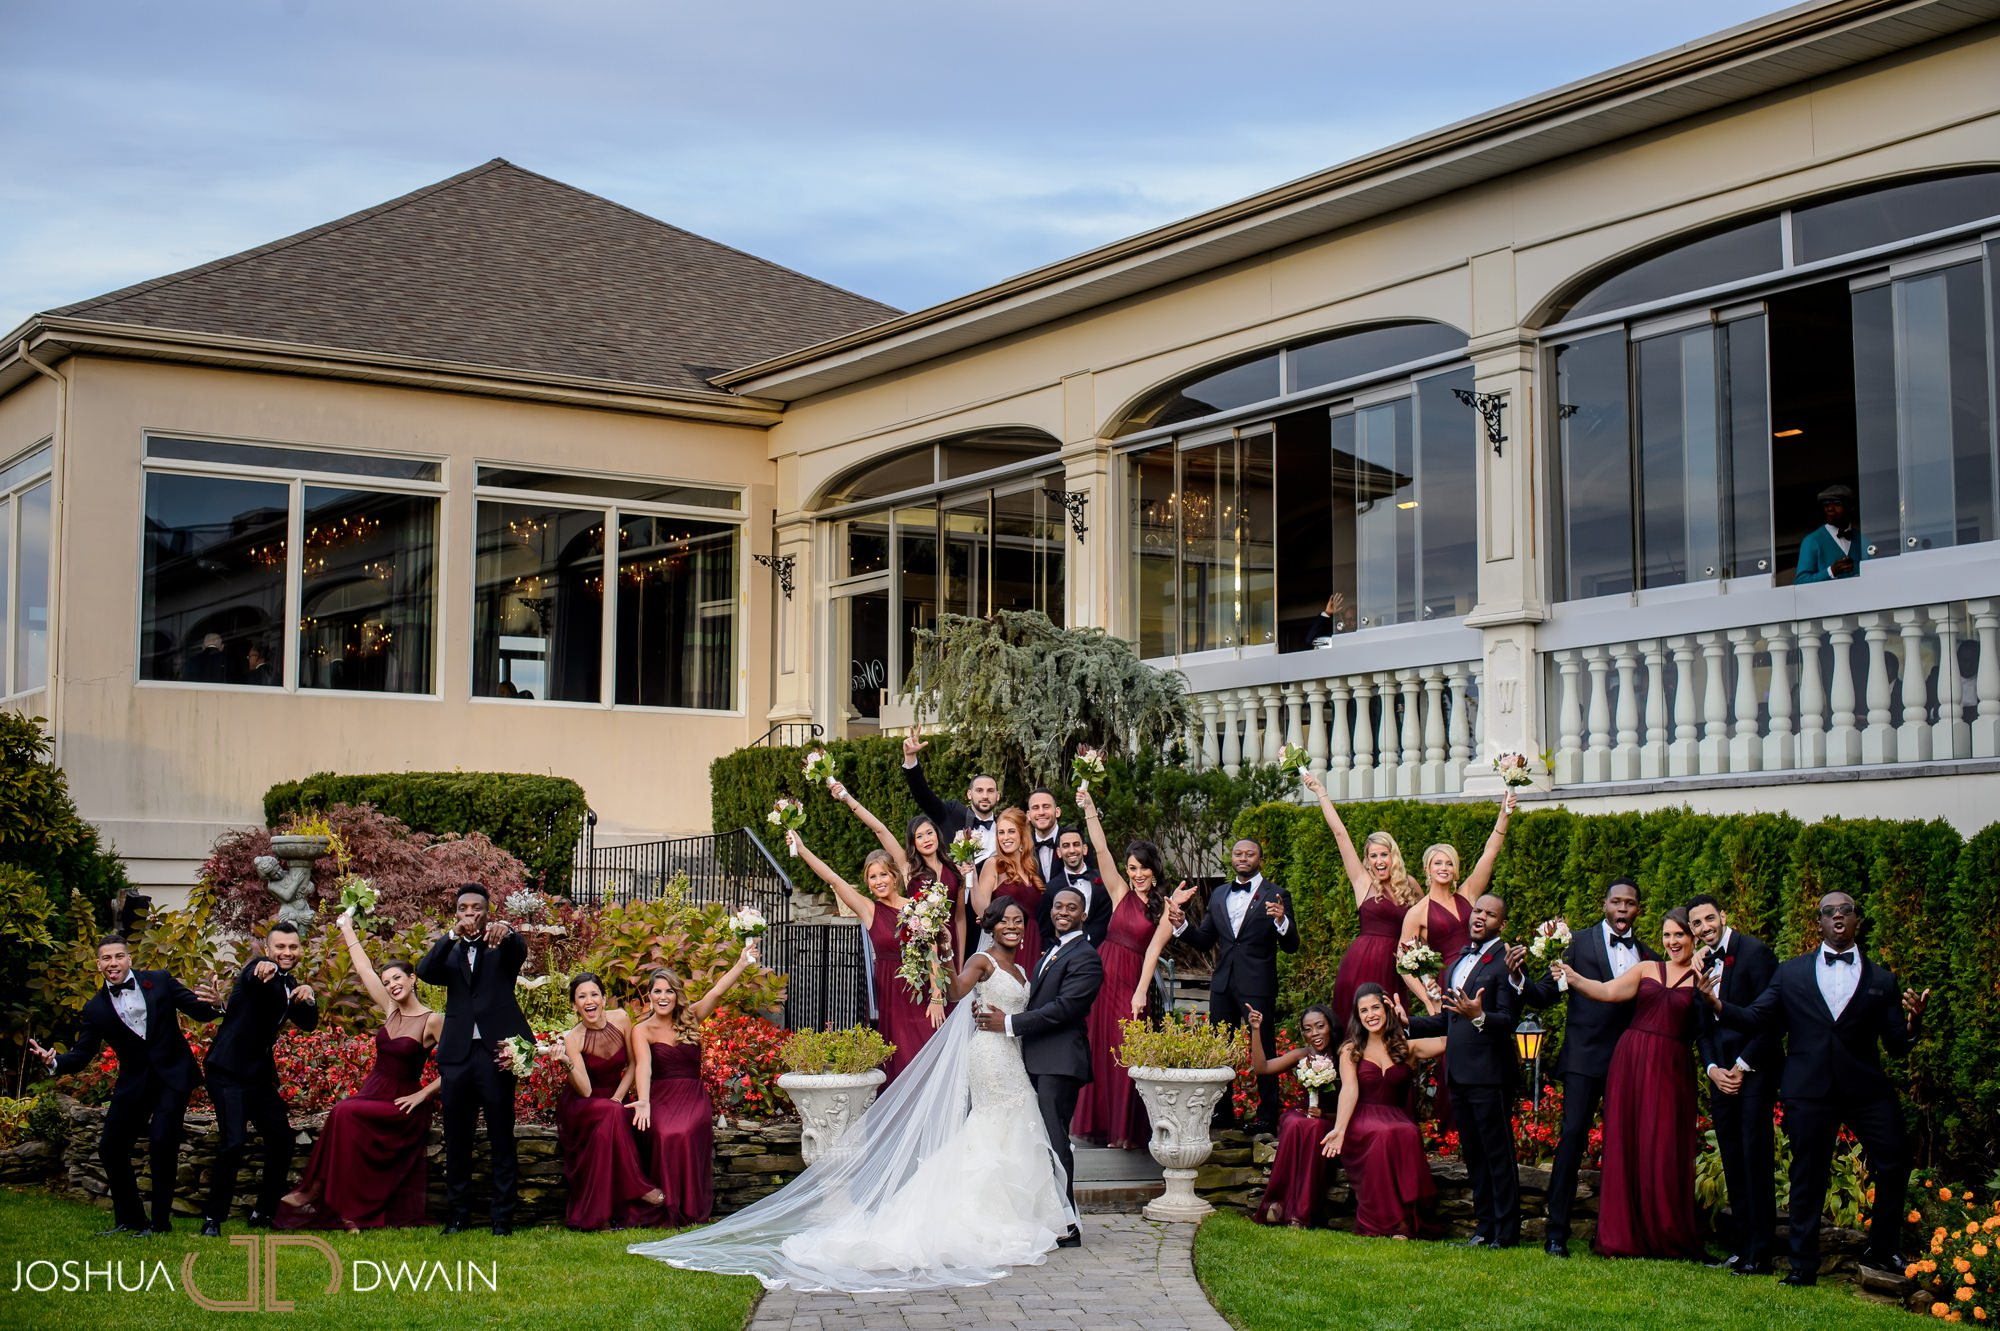 stephanie-richard-24-westmount-country-club-joshua-dwain-nj-wedding-photography